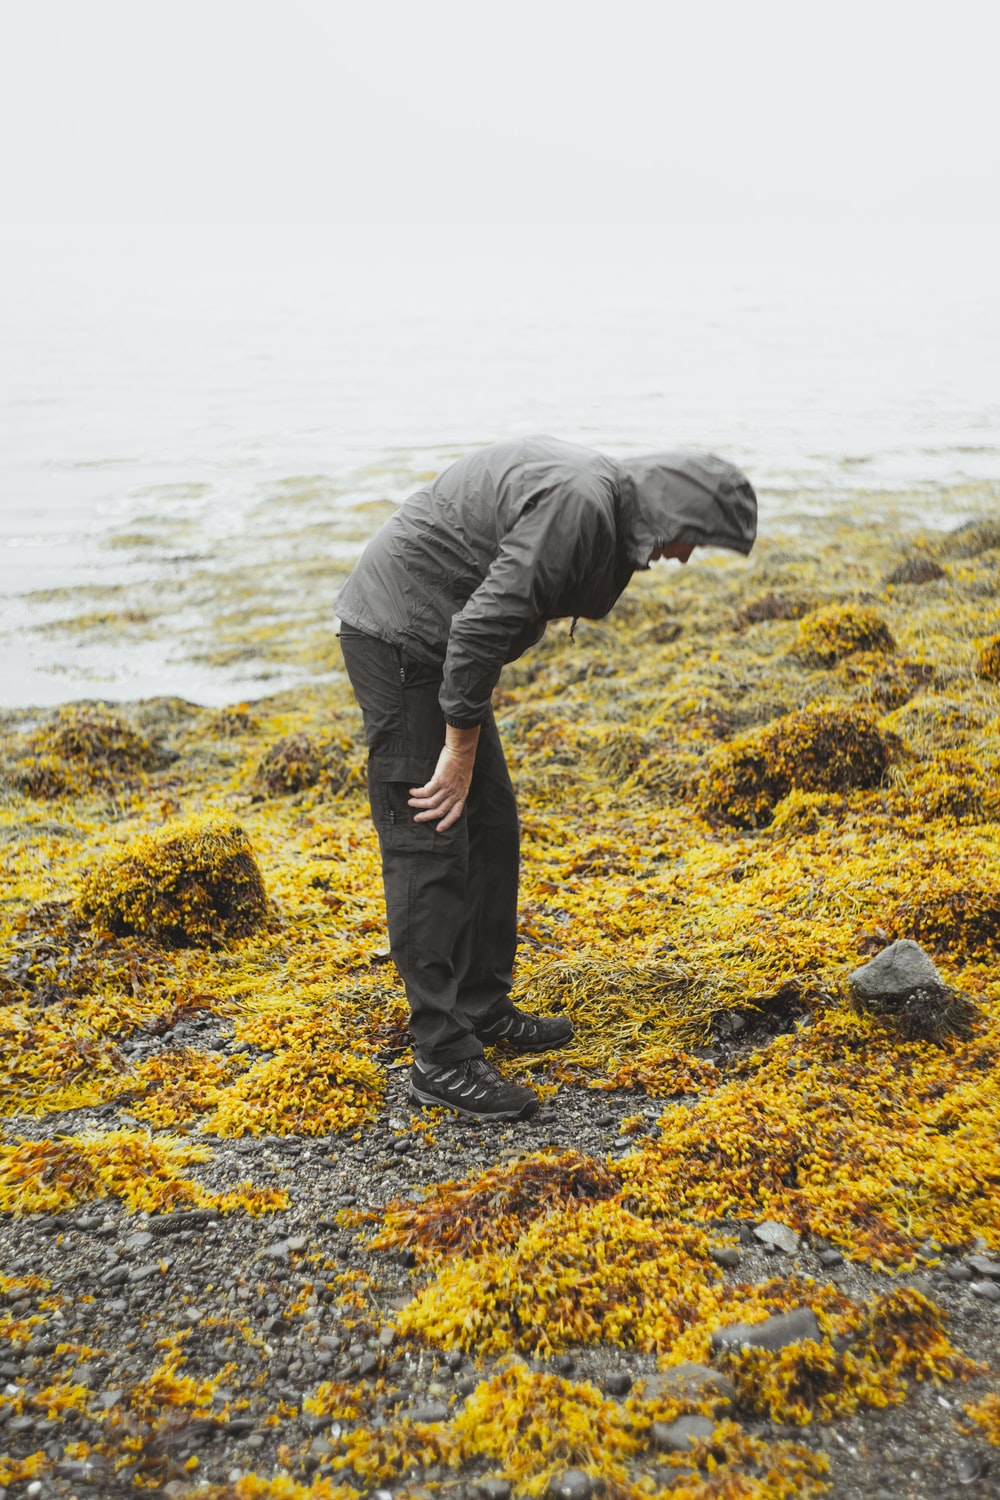 man in black jacket and black pants standing on rock near body of water during daytime